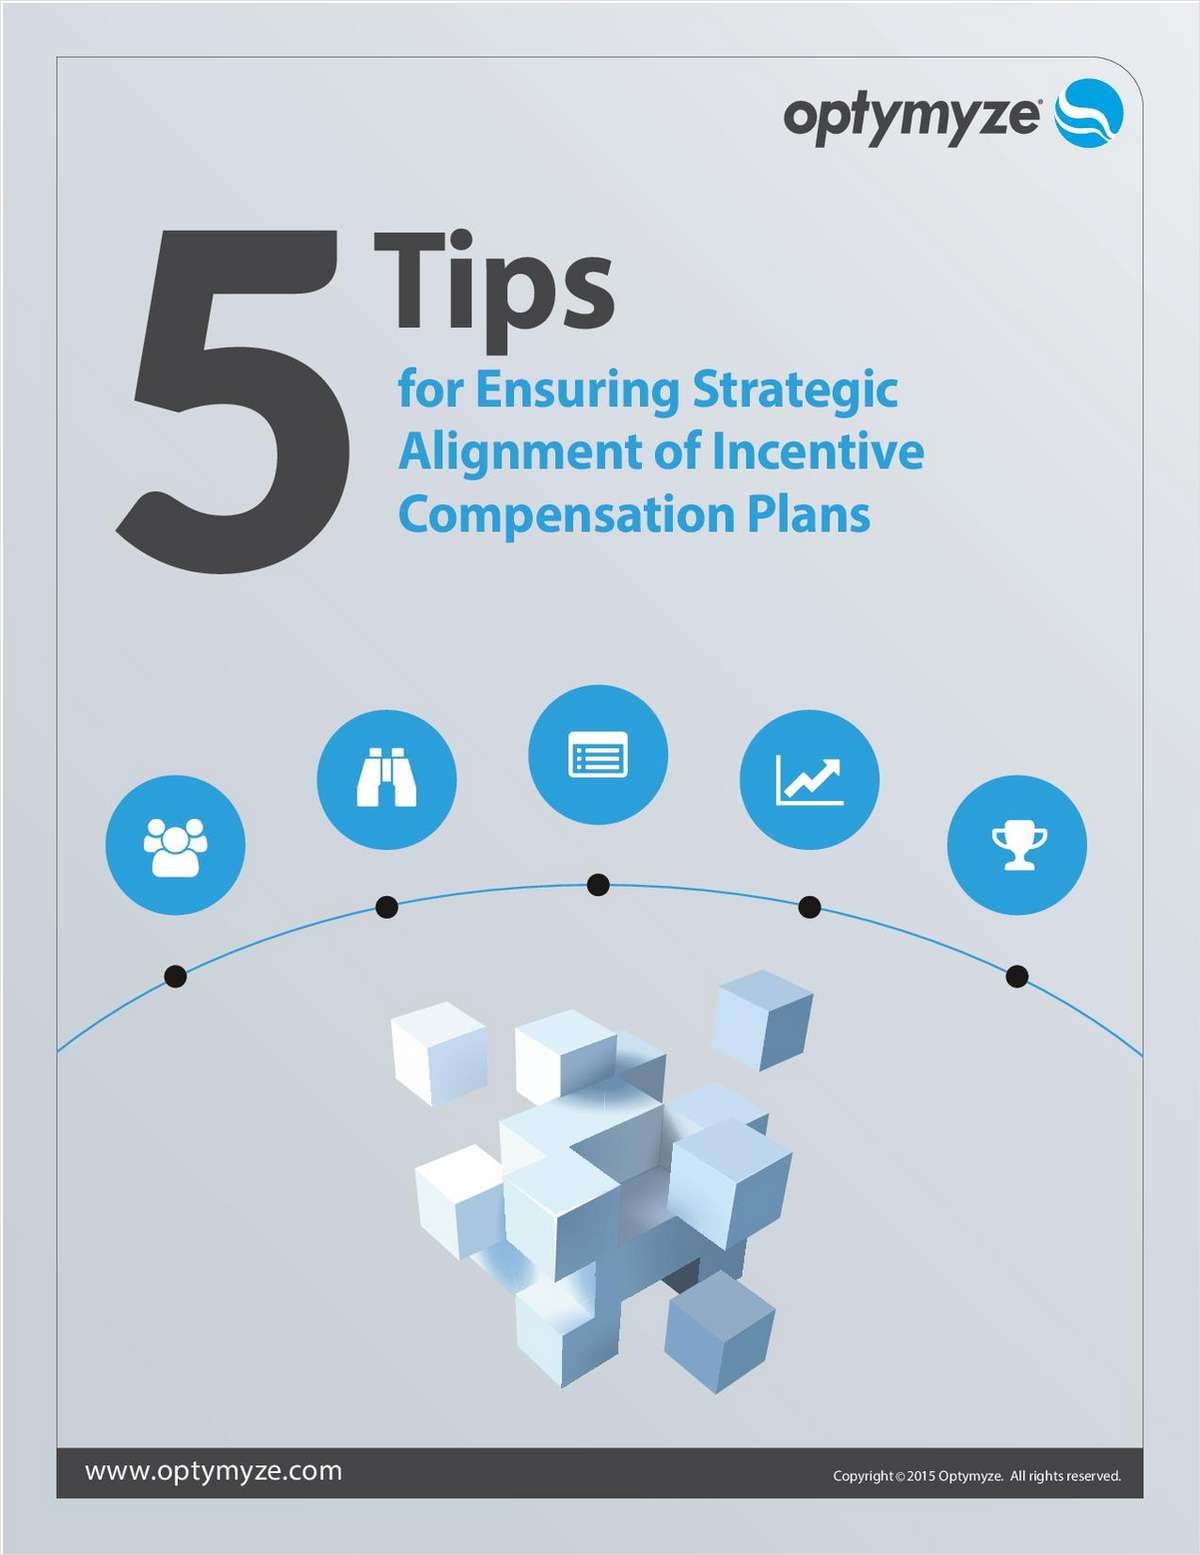 5 Tips for Ensuring Strategic Alignment of Incentive Compensation Plans